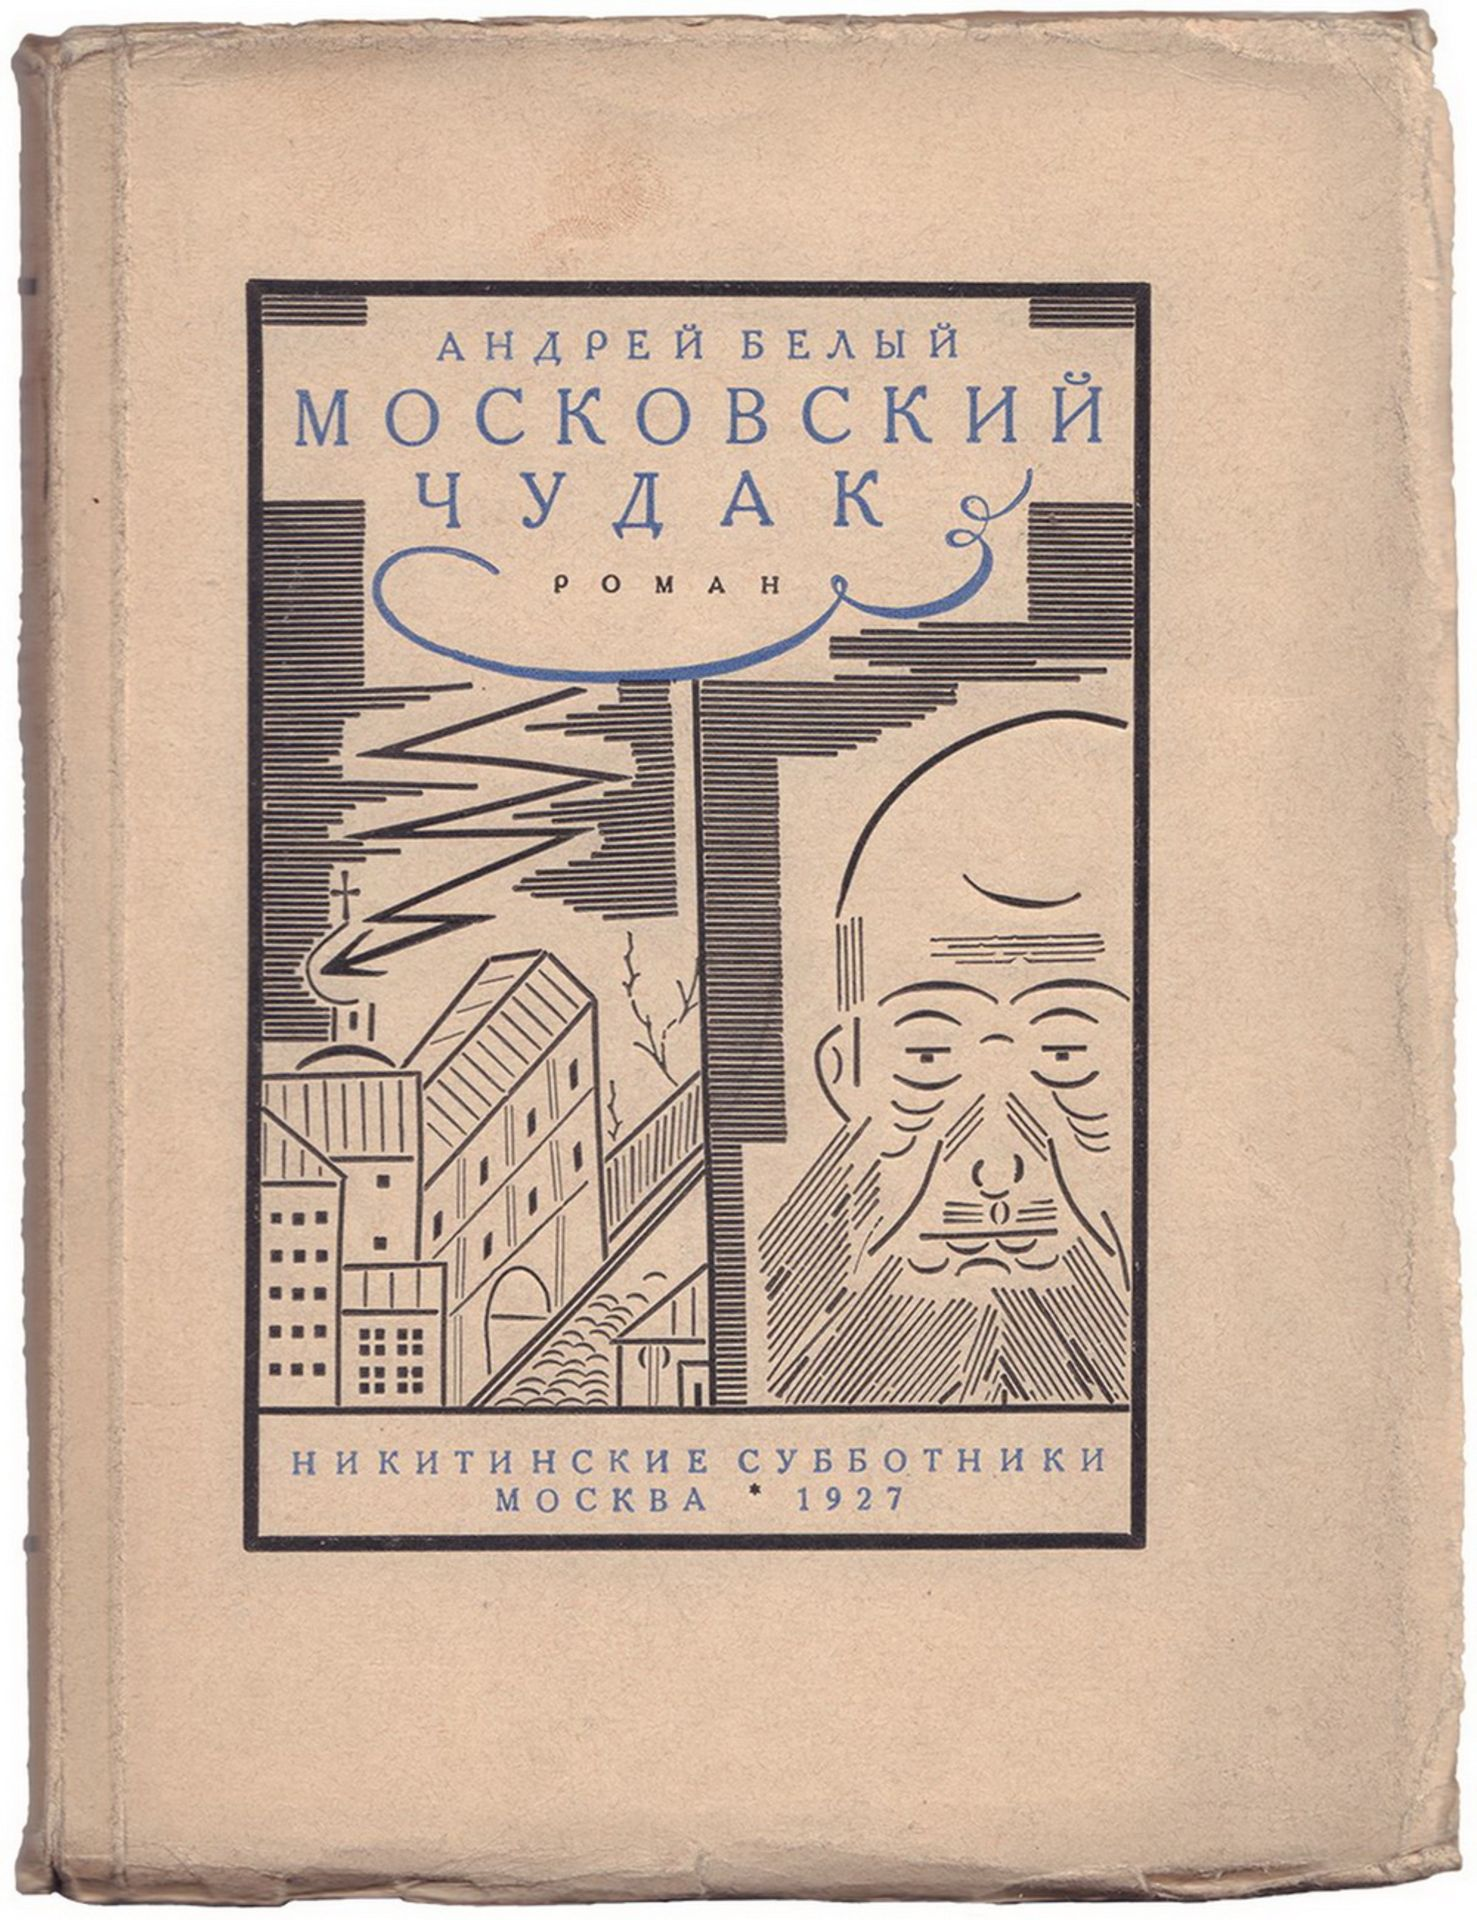 [Telingater, S., design. Soviet art]. Bely, A. Moscow eccentric. - 2d edition. Moscow, 1927. - 250,